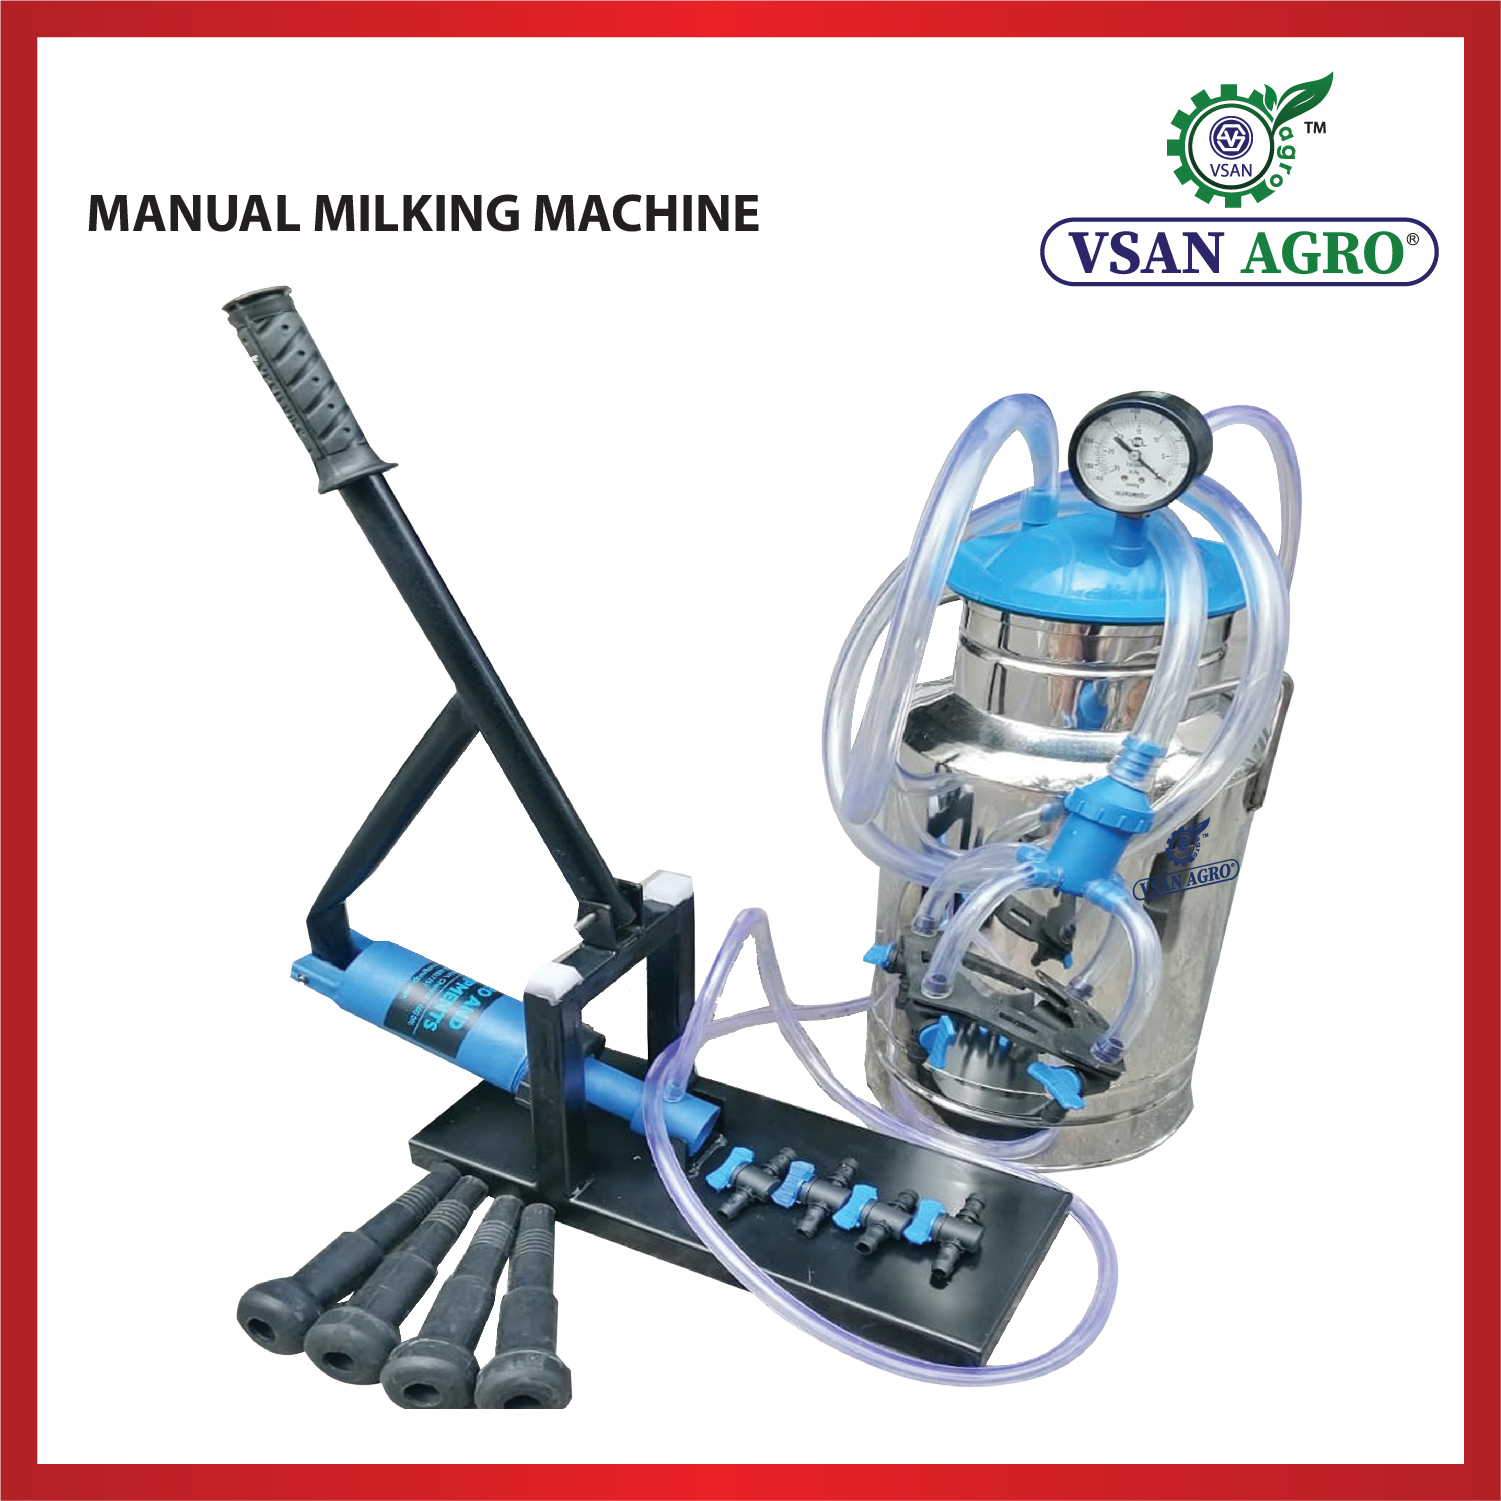 VSAN Manual Milking Machine